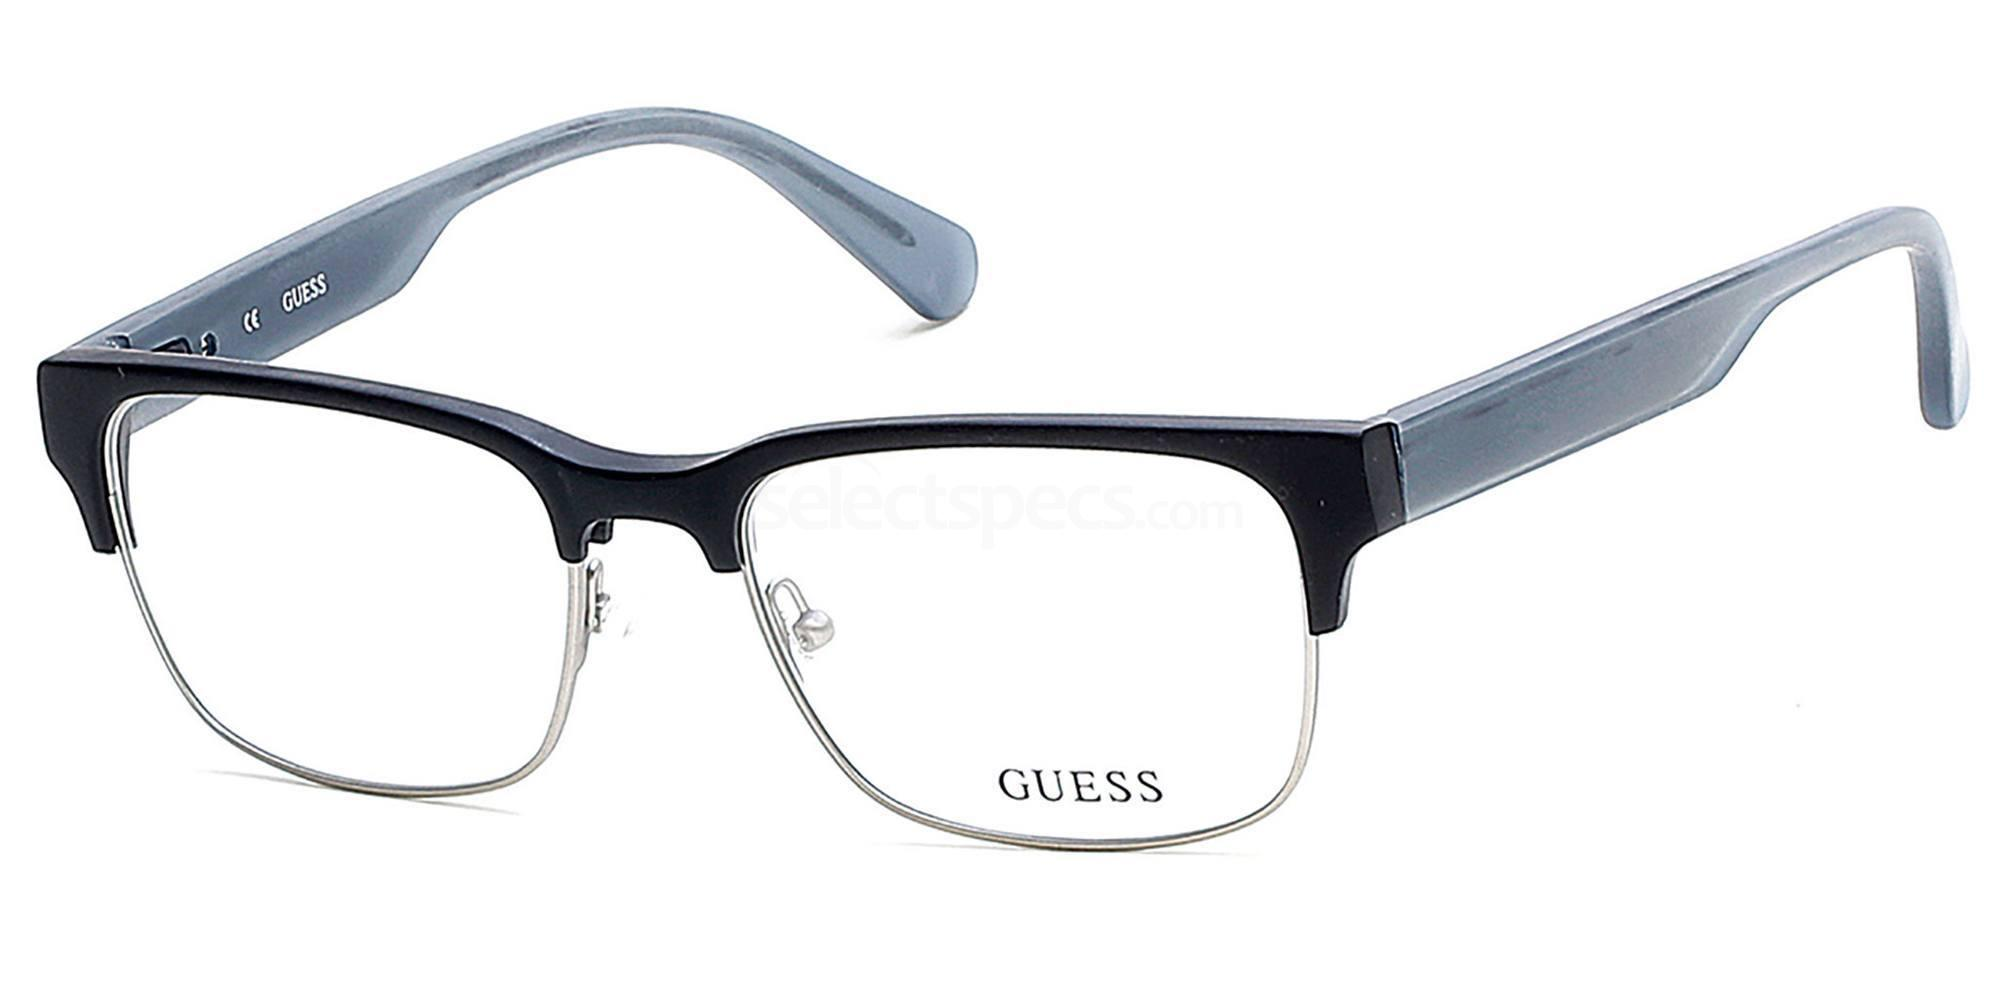 002 GU1894 Glasses, Guess